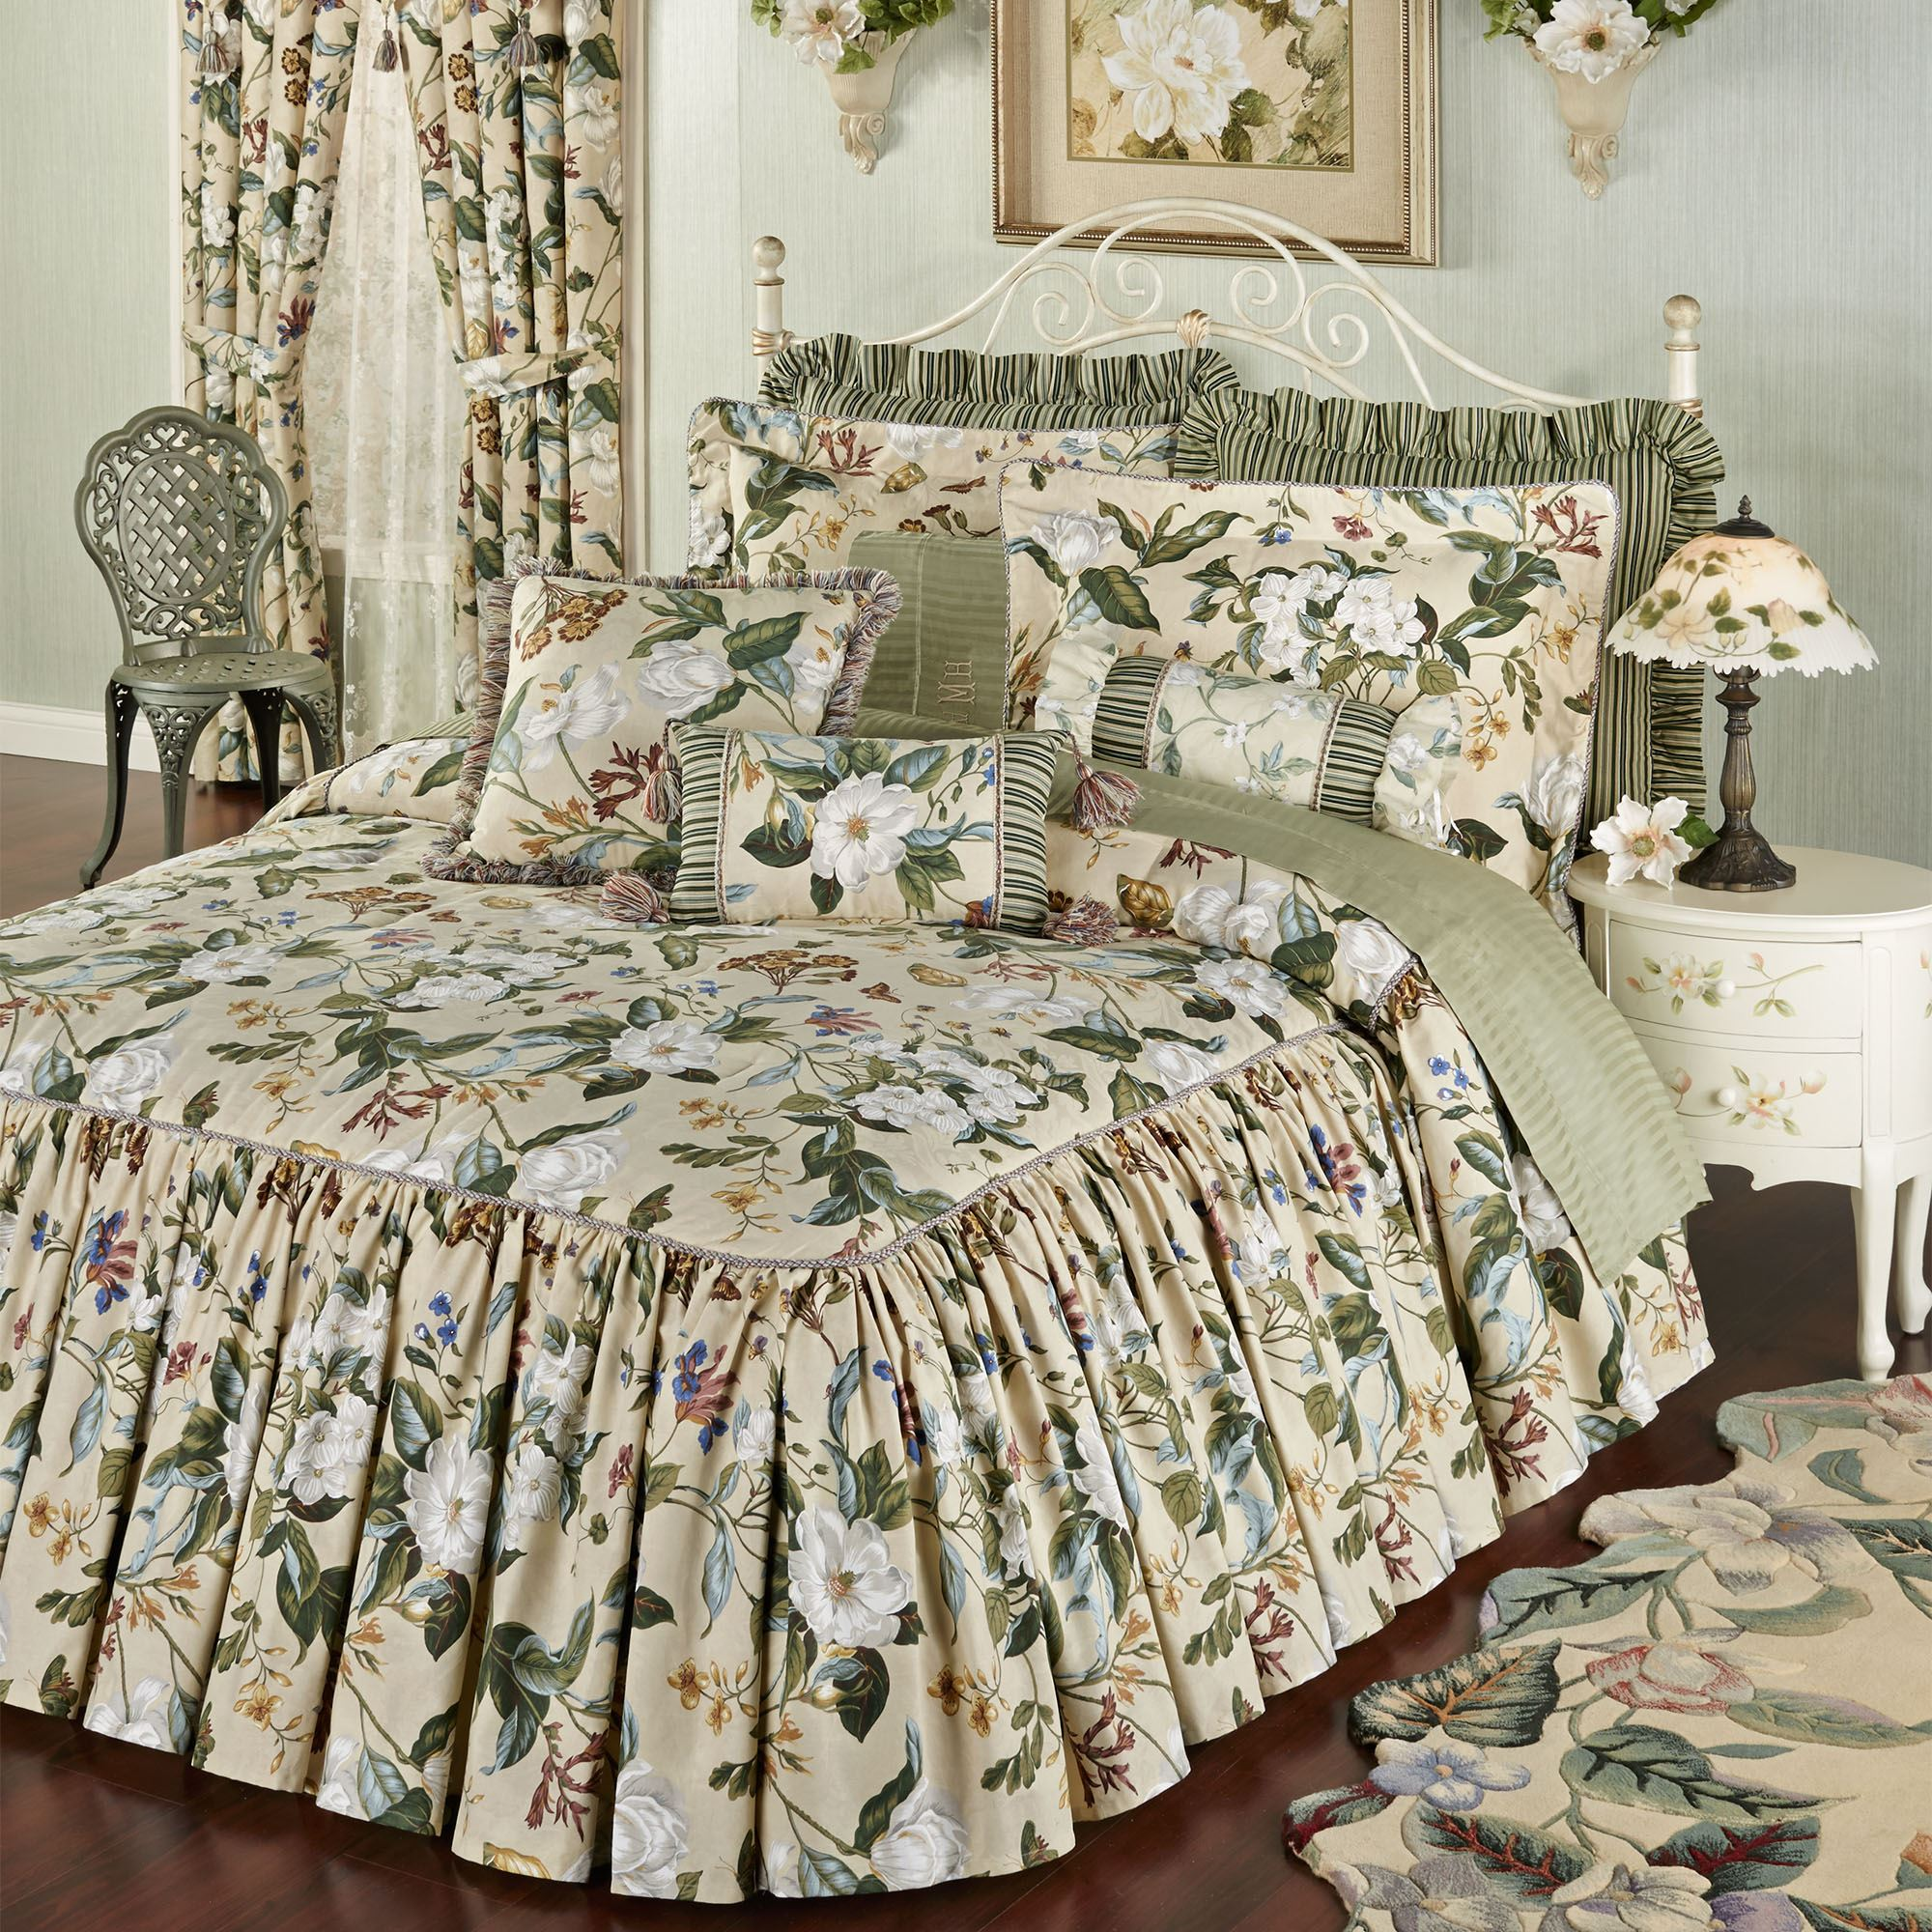 Feminine Bedroom Decorating Ideas Garden Images Iii Magnolia Floral Ruffled Flounce Bedspread